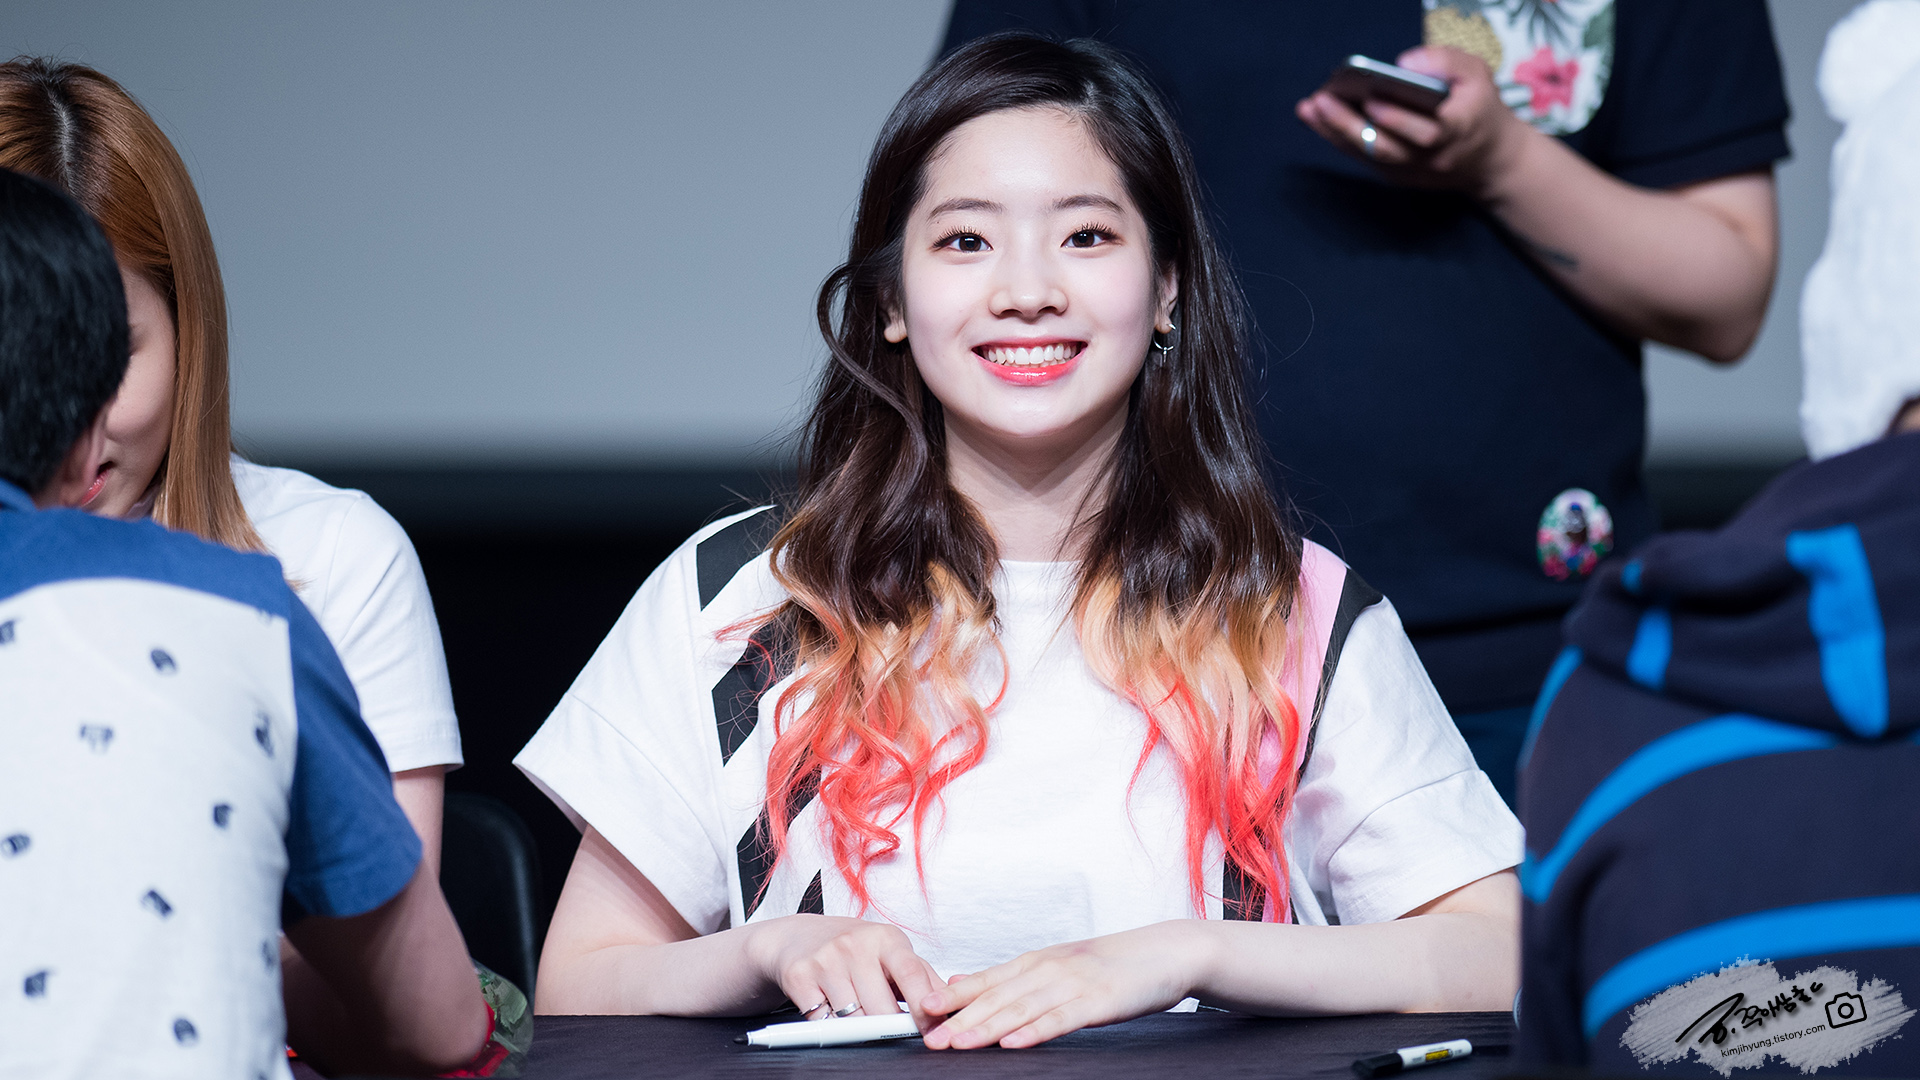 Kim Dahyun Hd Wallpaper 71798 Asiachan Kpop Image Board